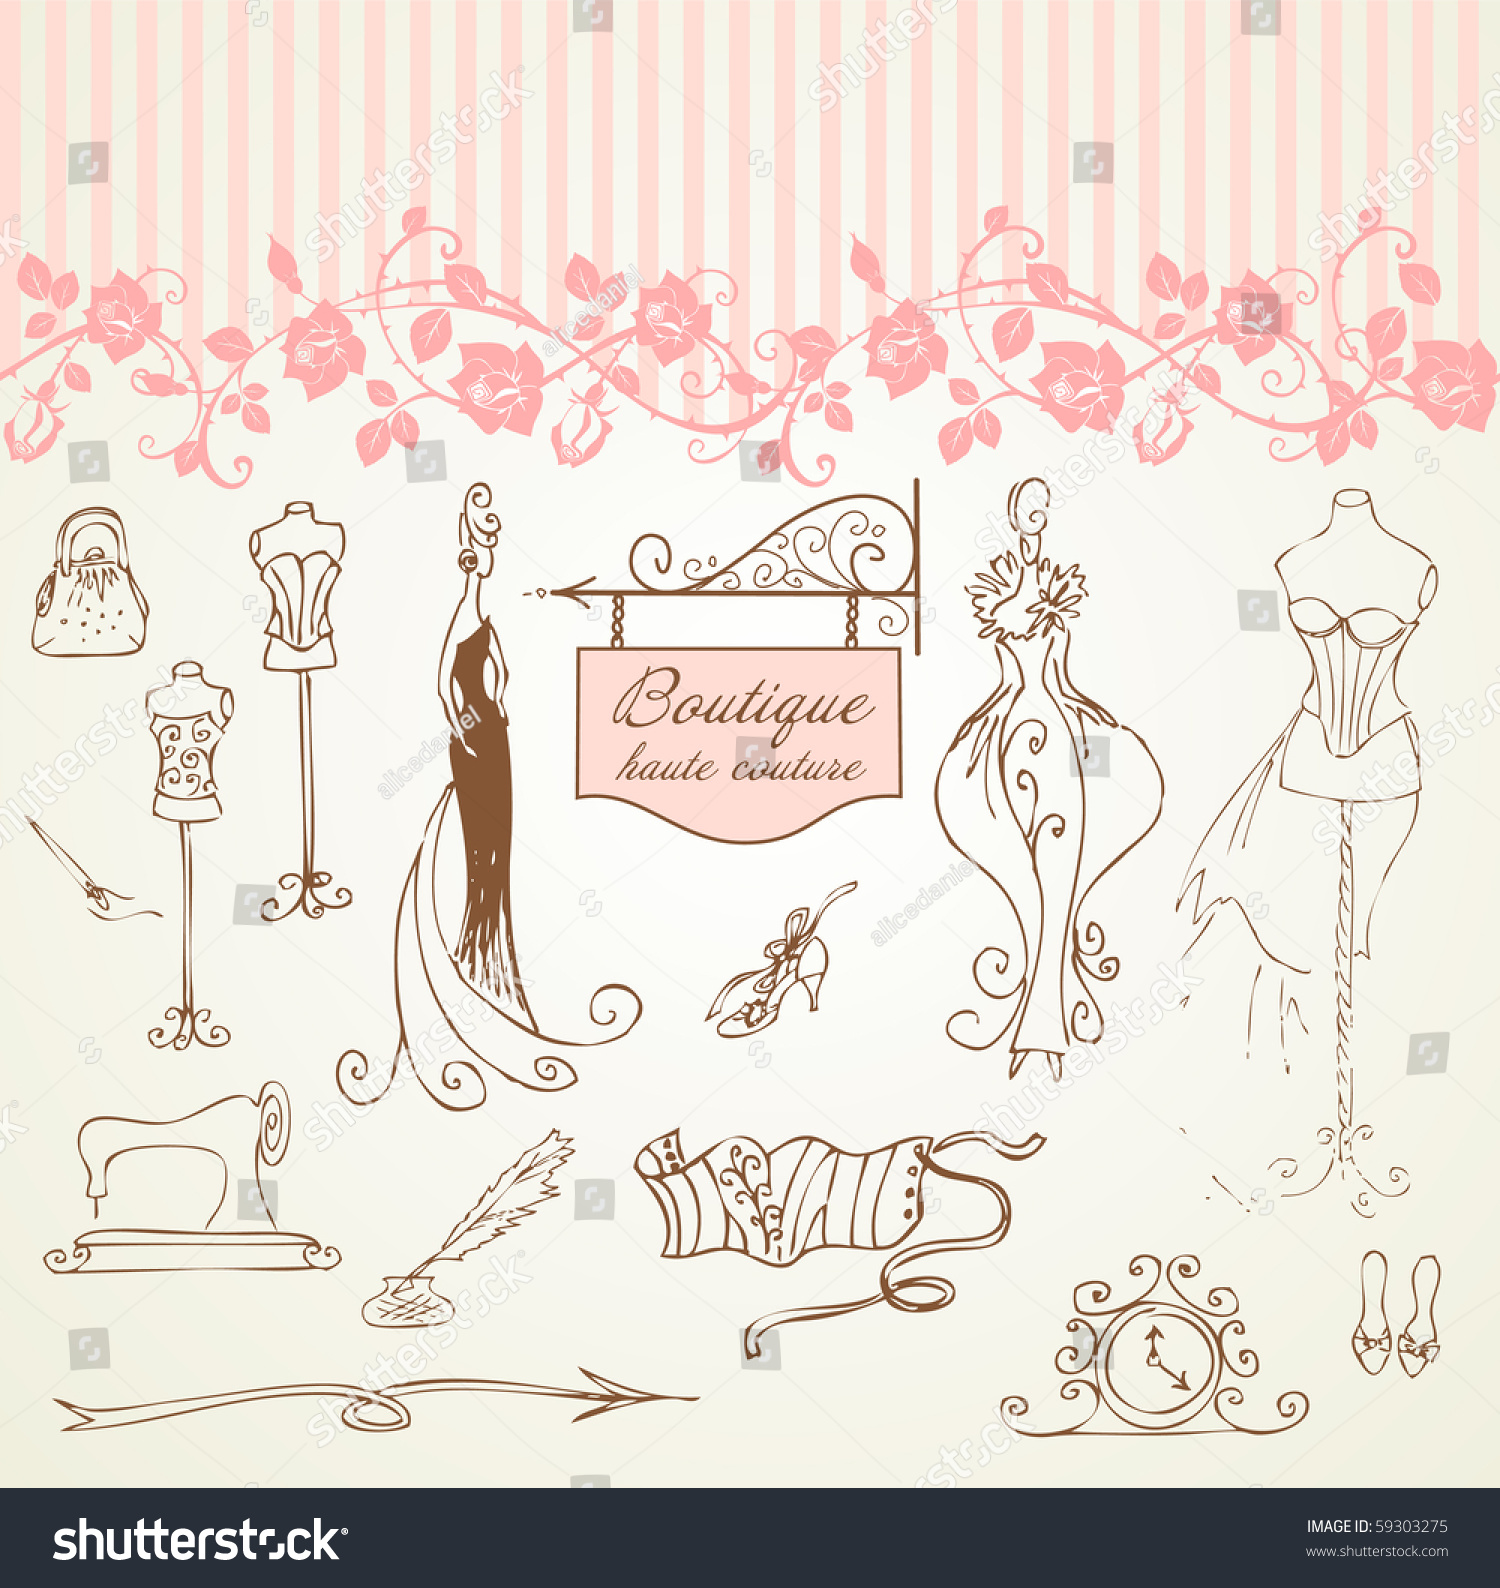 Boutique haute couture and dressmaking stock vector for Haute couture seamstress